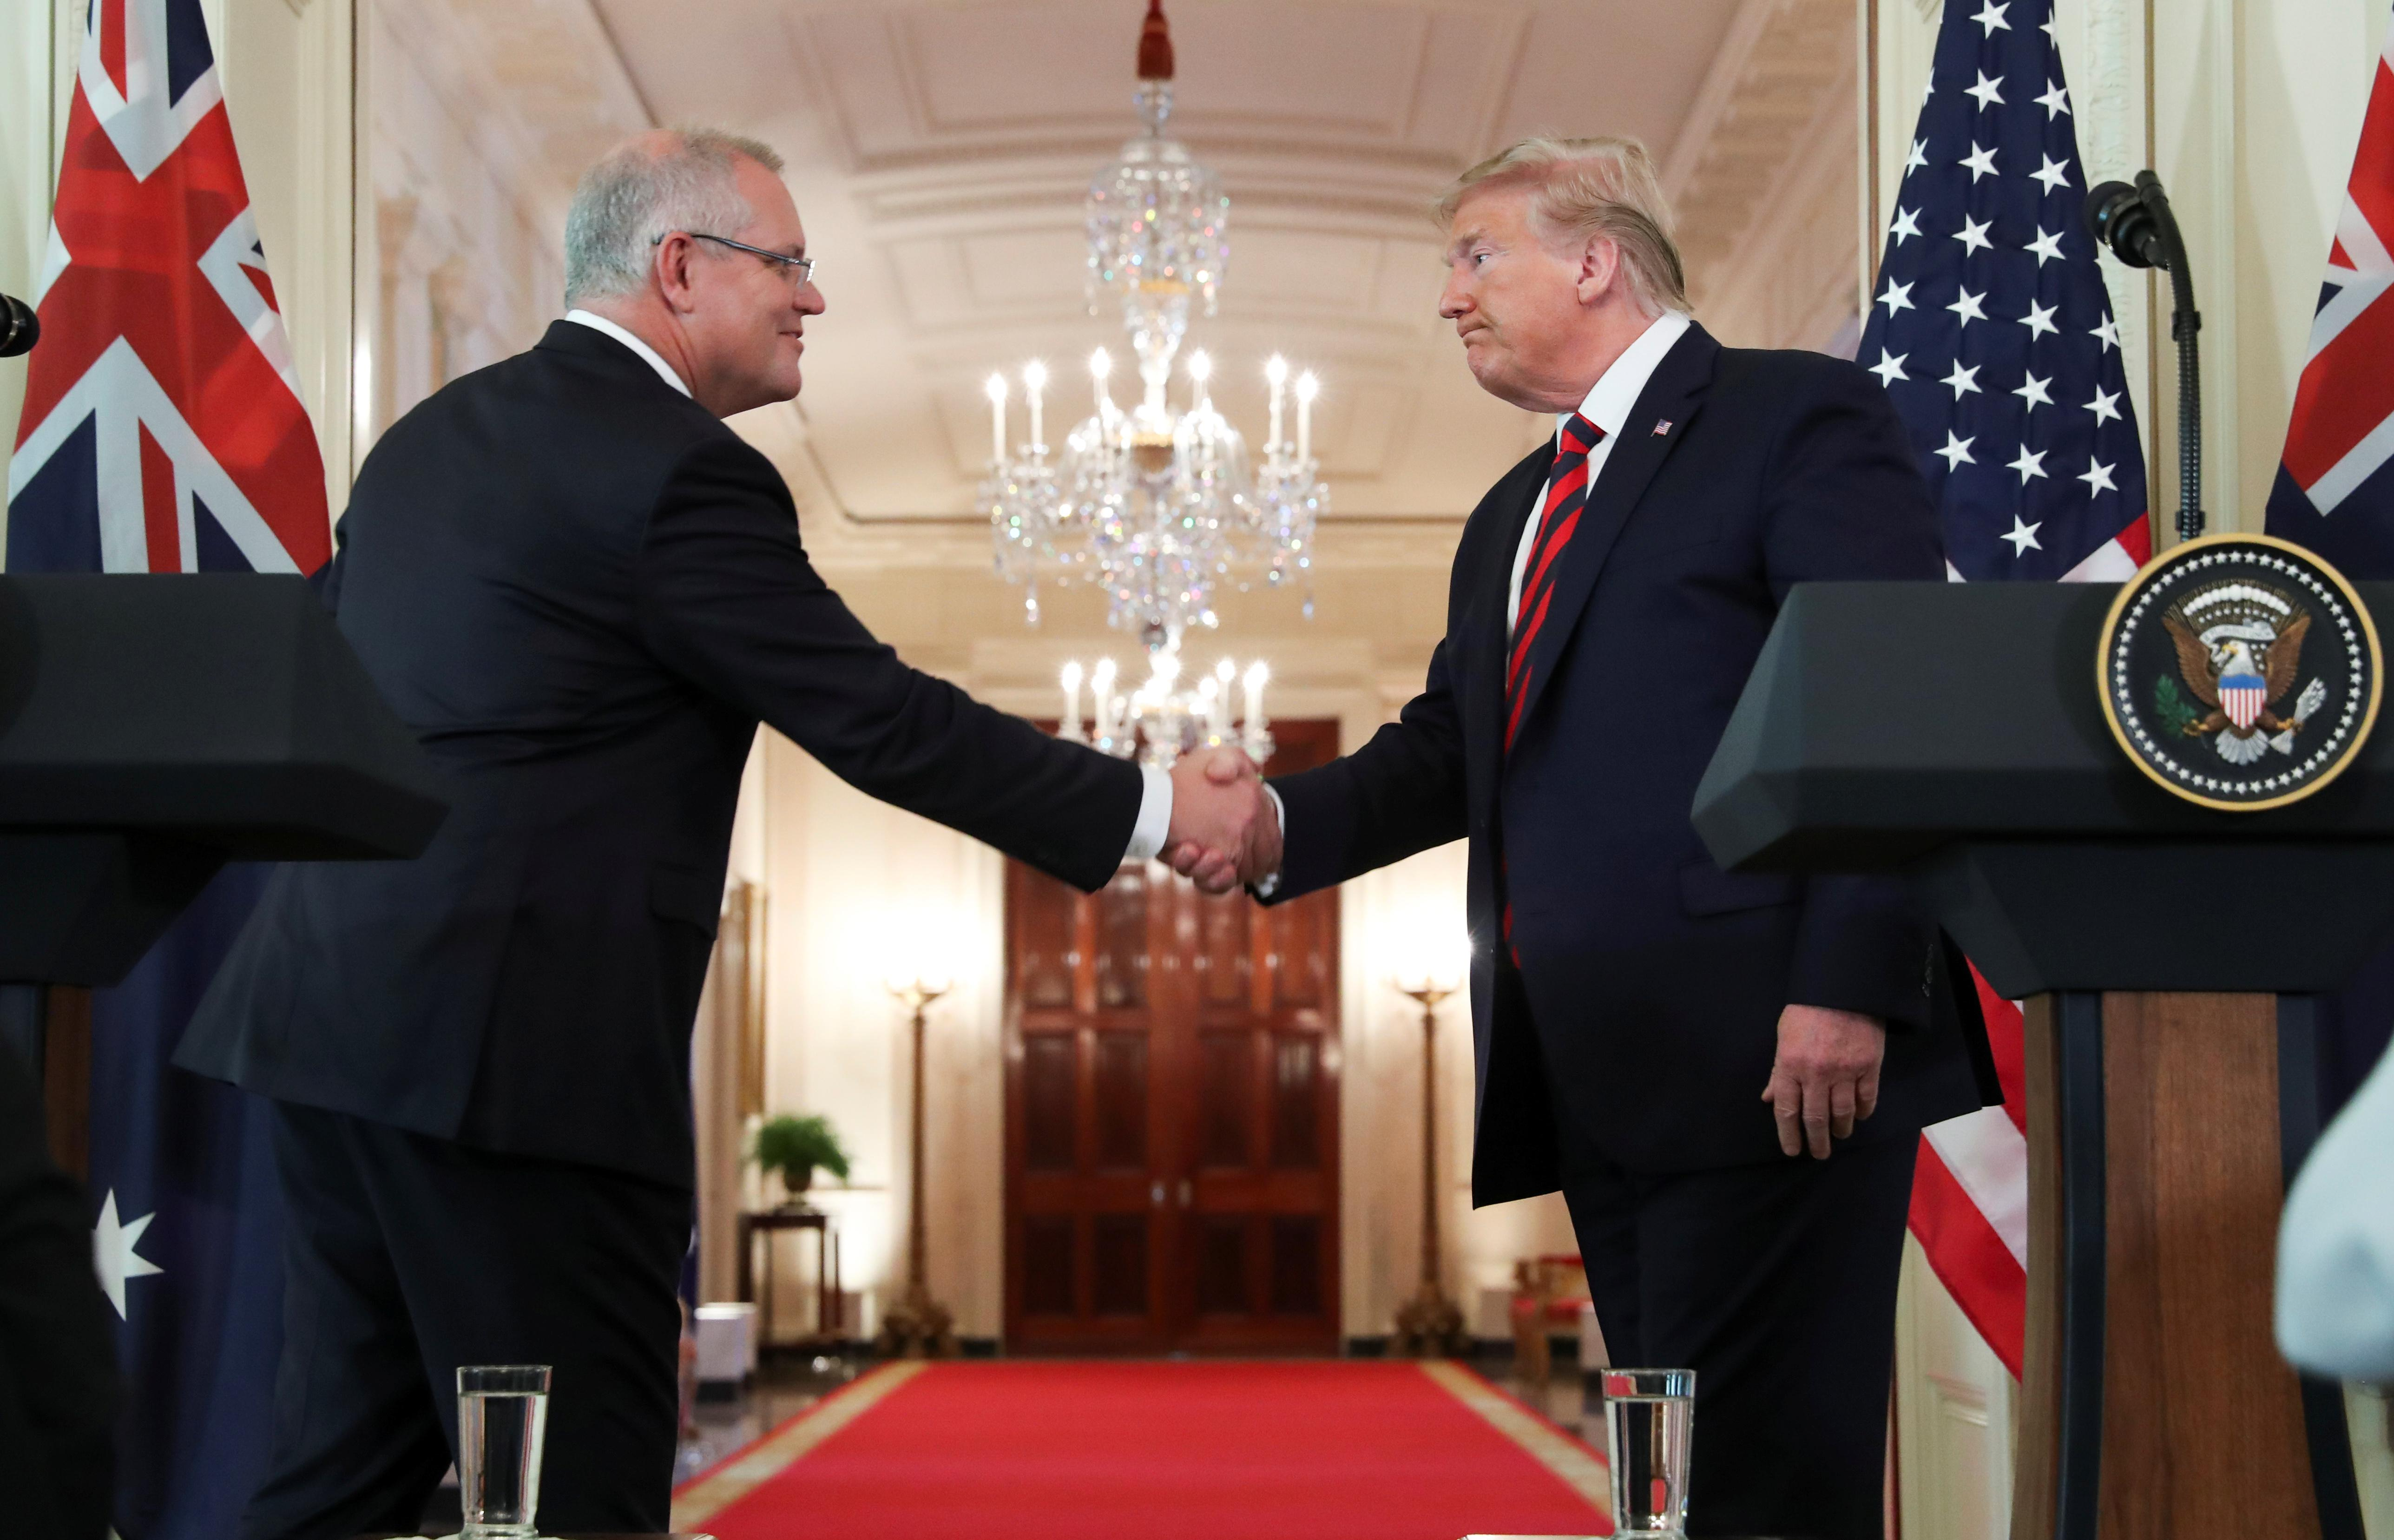 Trump welcomes Australia's PM, cementing strong trade, security ties